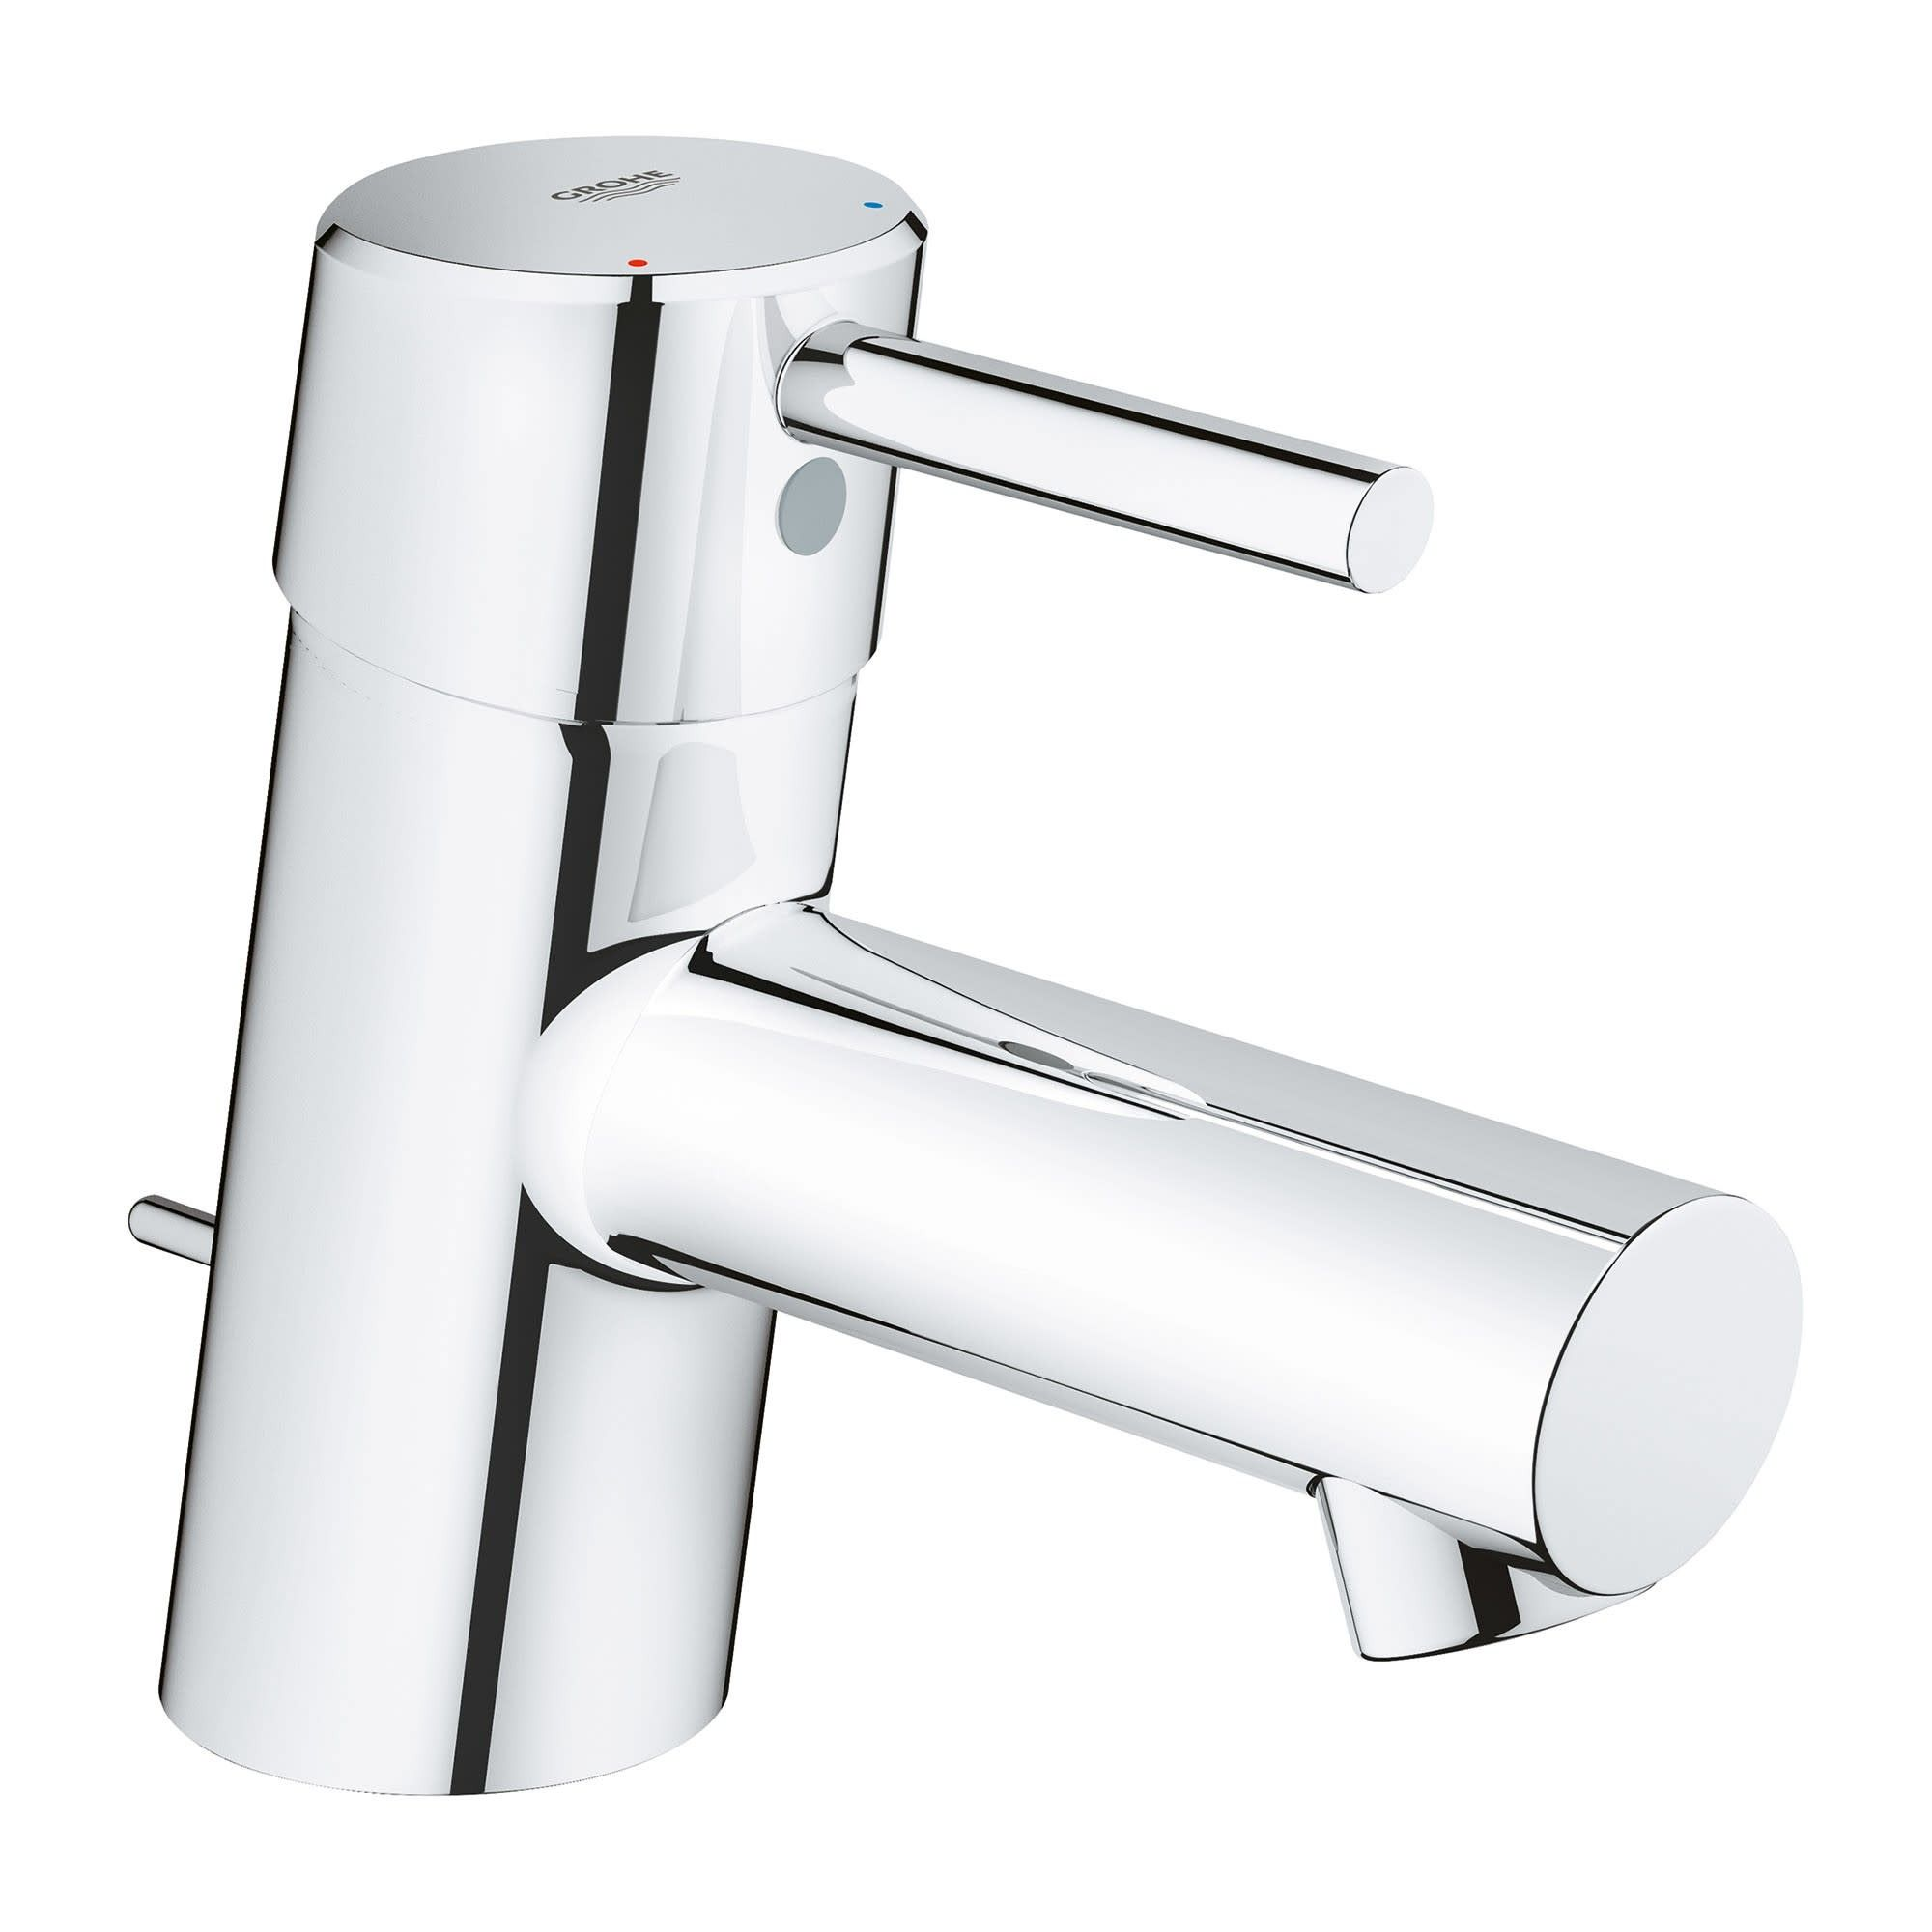 Grohe America Inc 34 702 Grohe 34 702 Concetto 1 2 Gpm Single Hole Bathroom Faucet With Silkmove Starlight Chrome In 2020 Bathroom Faucets Single Hole Bathroom Faucet Single Handle Bathroom Faucet [ 2000 x 2000 Pixel ]